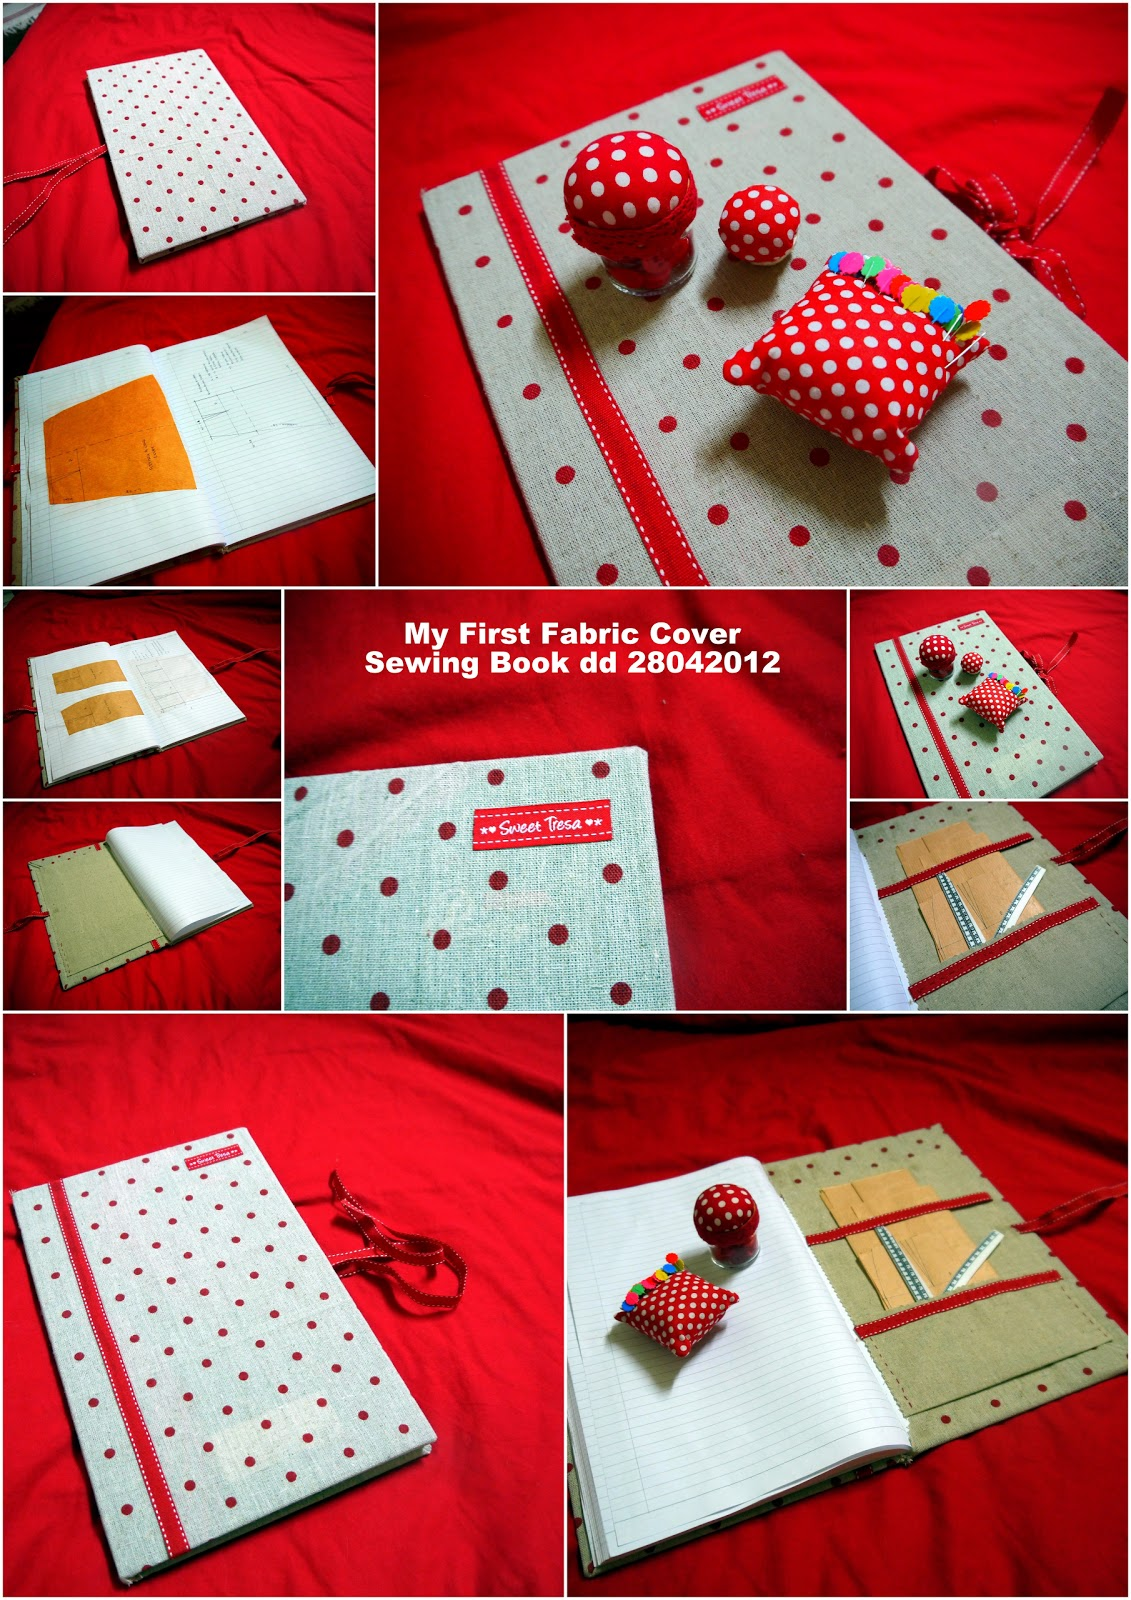 Book Cover Sewing Jobs : Sweet tresa ¸¸ ¨ my first fabric cover sewing book